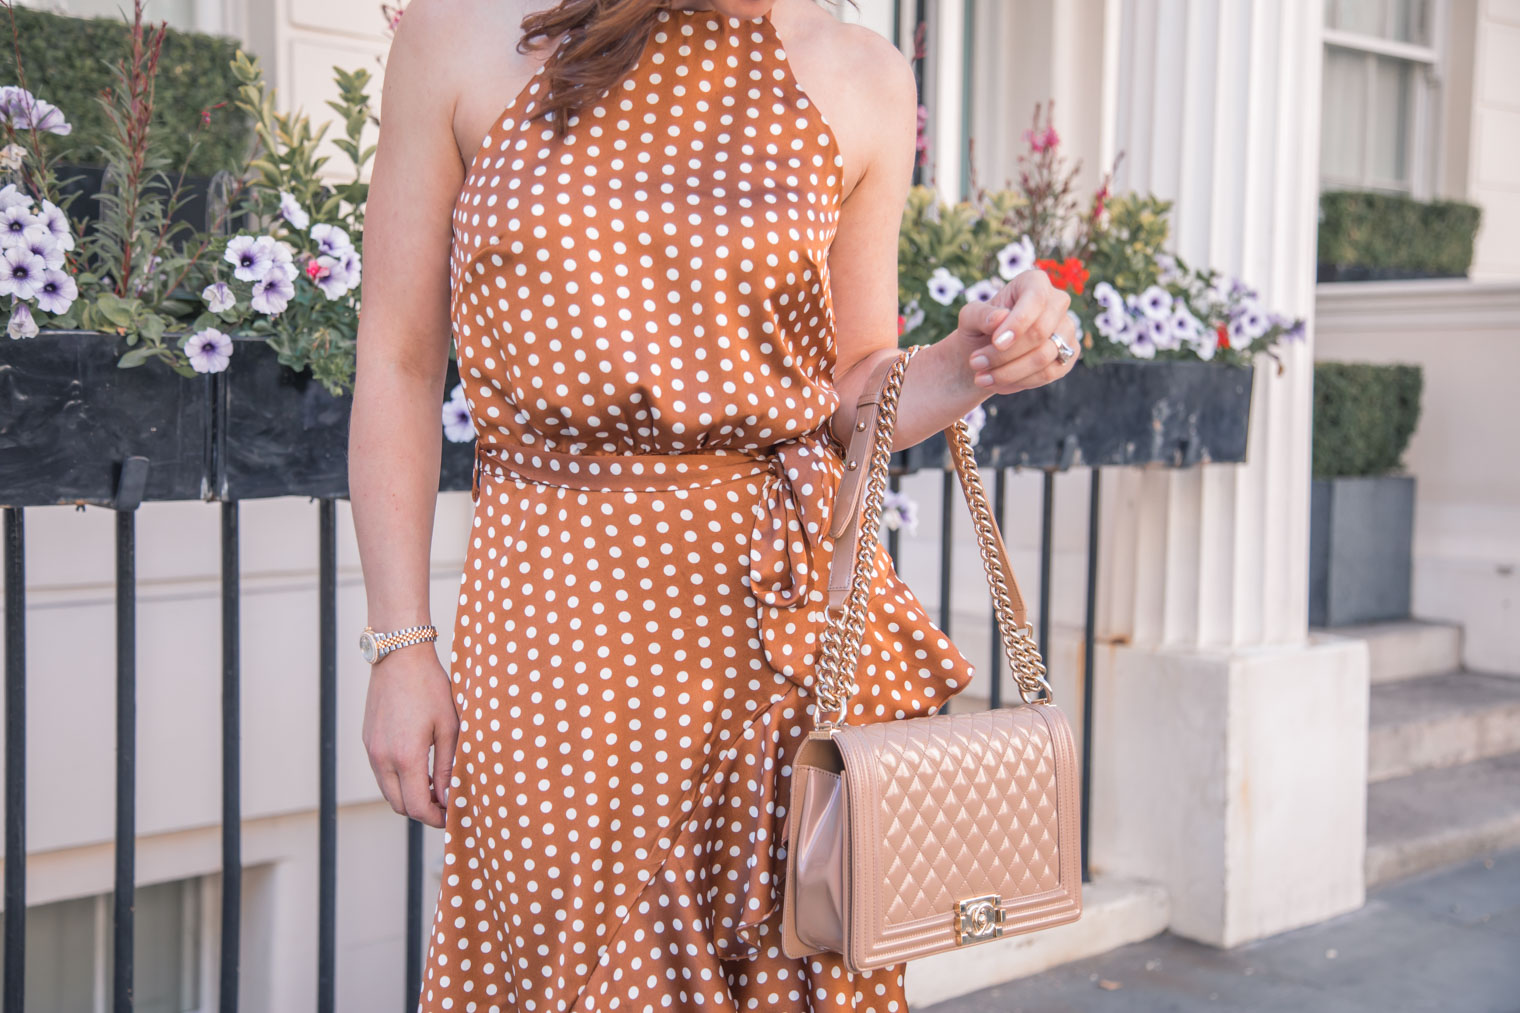 Polka dot dress by Forever Unique and Chanel handbag